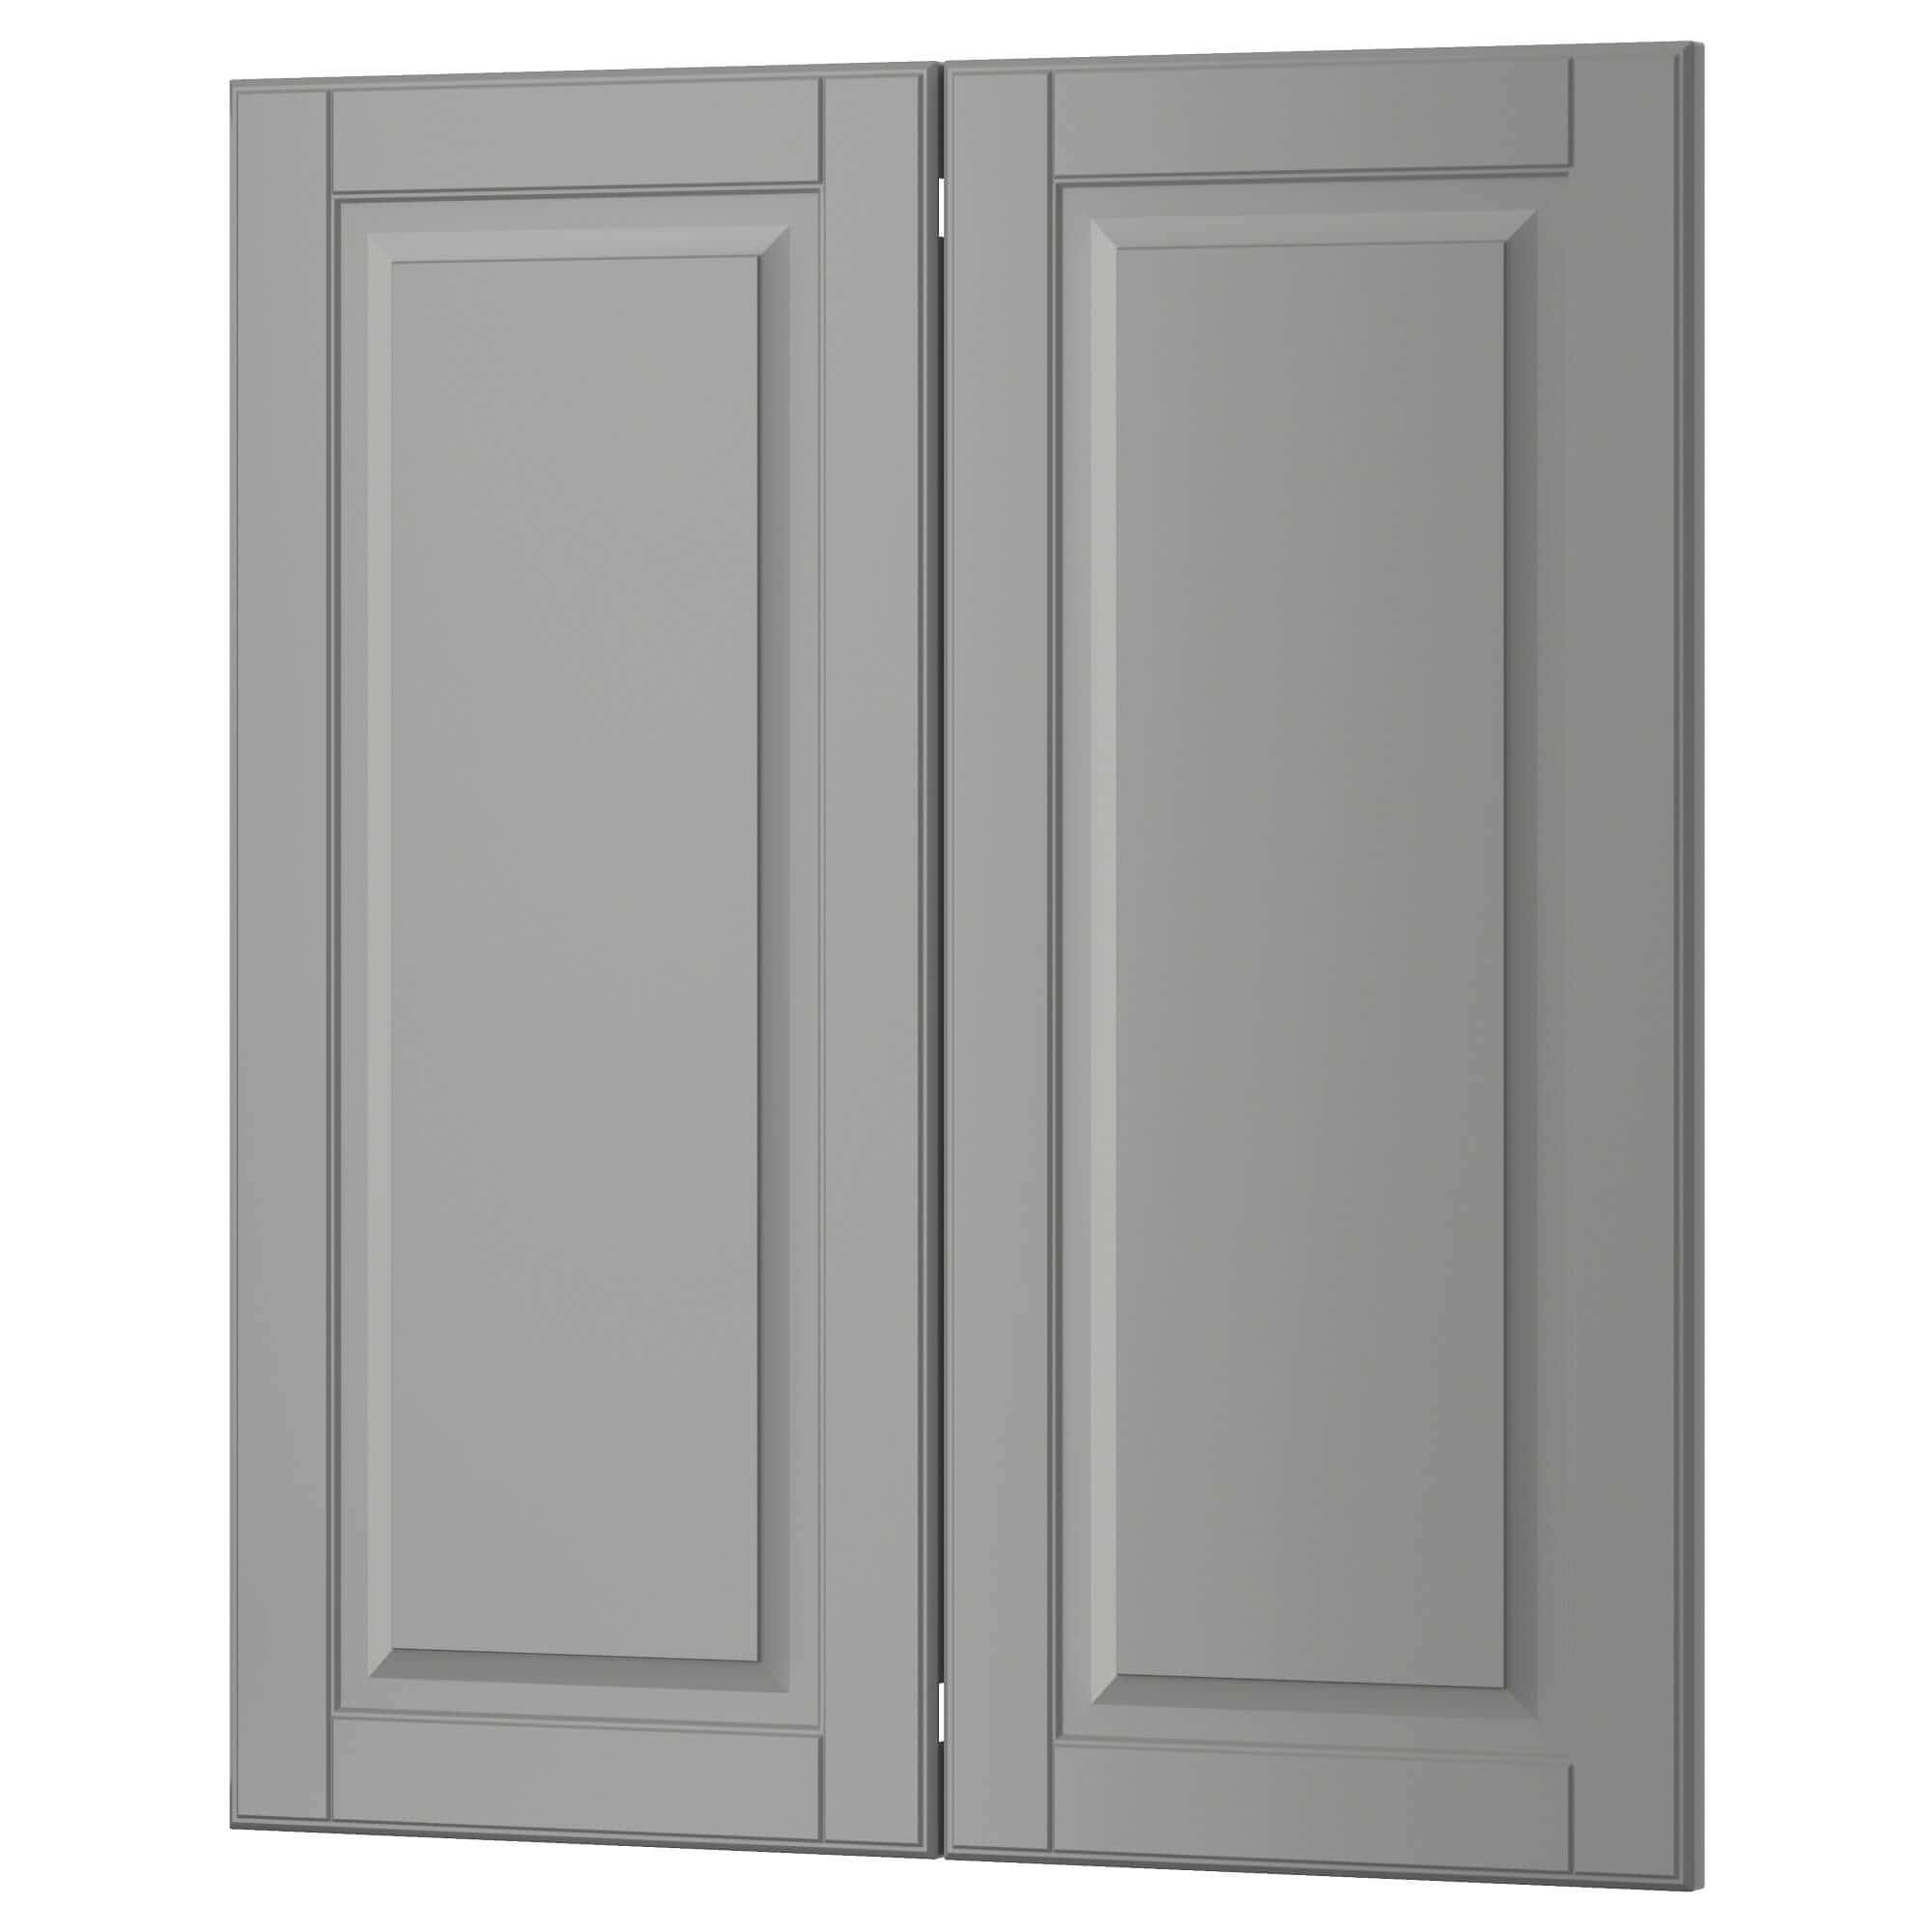 Shaker Cabinet Doors Top Shaker Style Cabinet Kitchen How